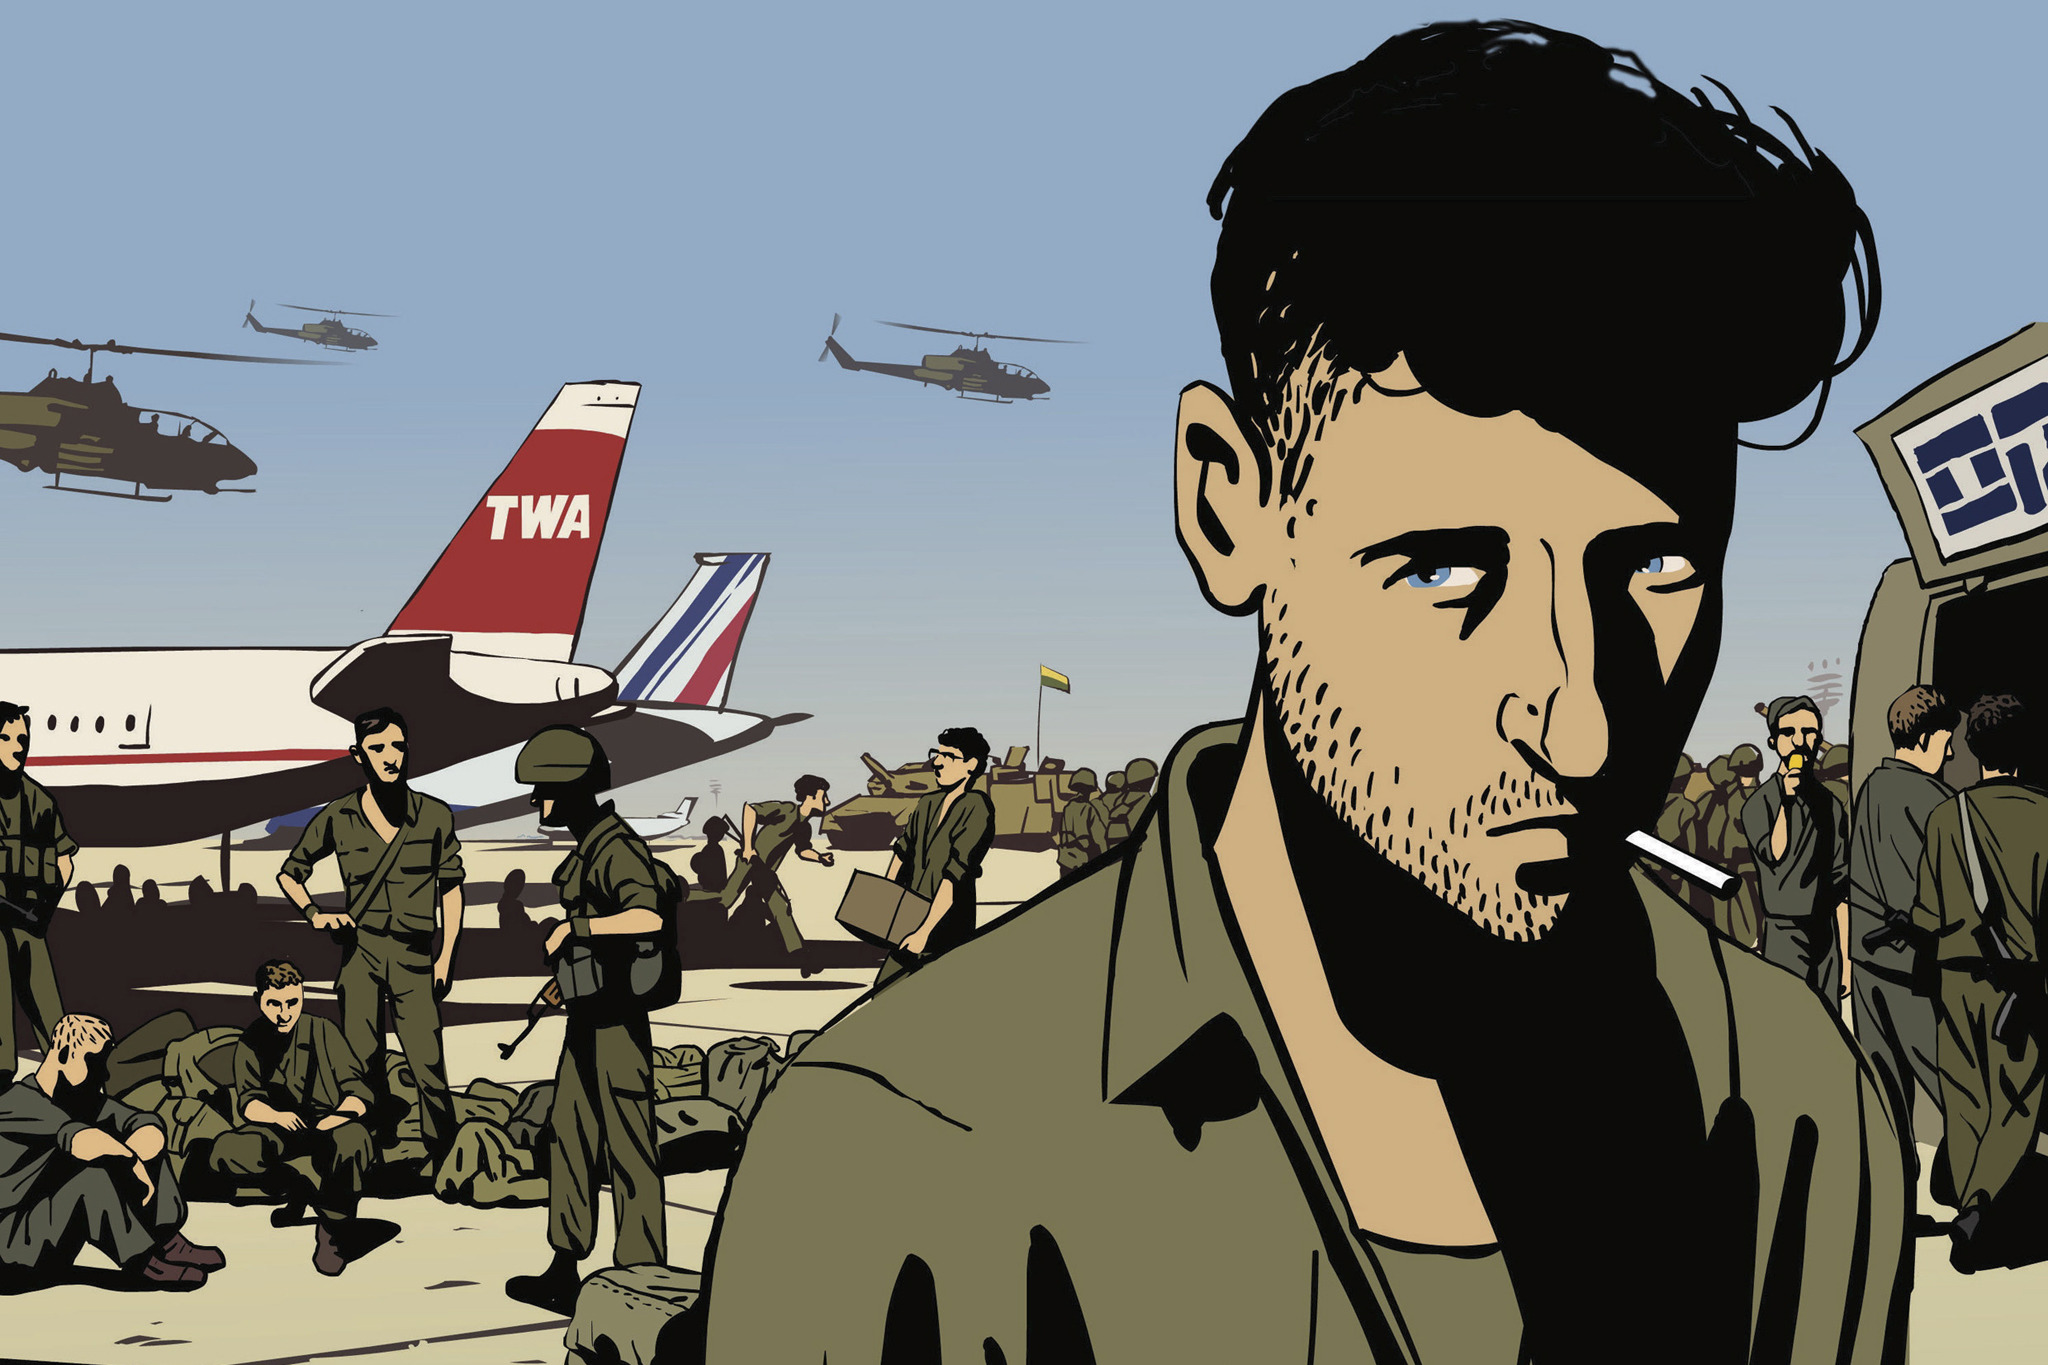 Best animated movies: Waltz With Bashir